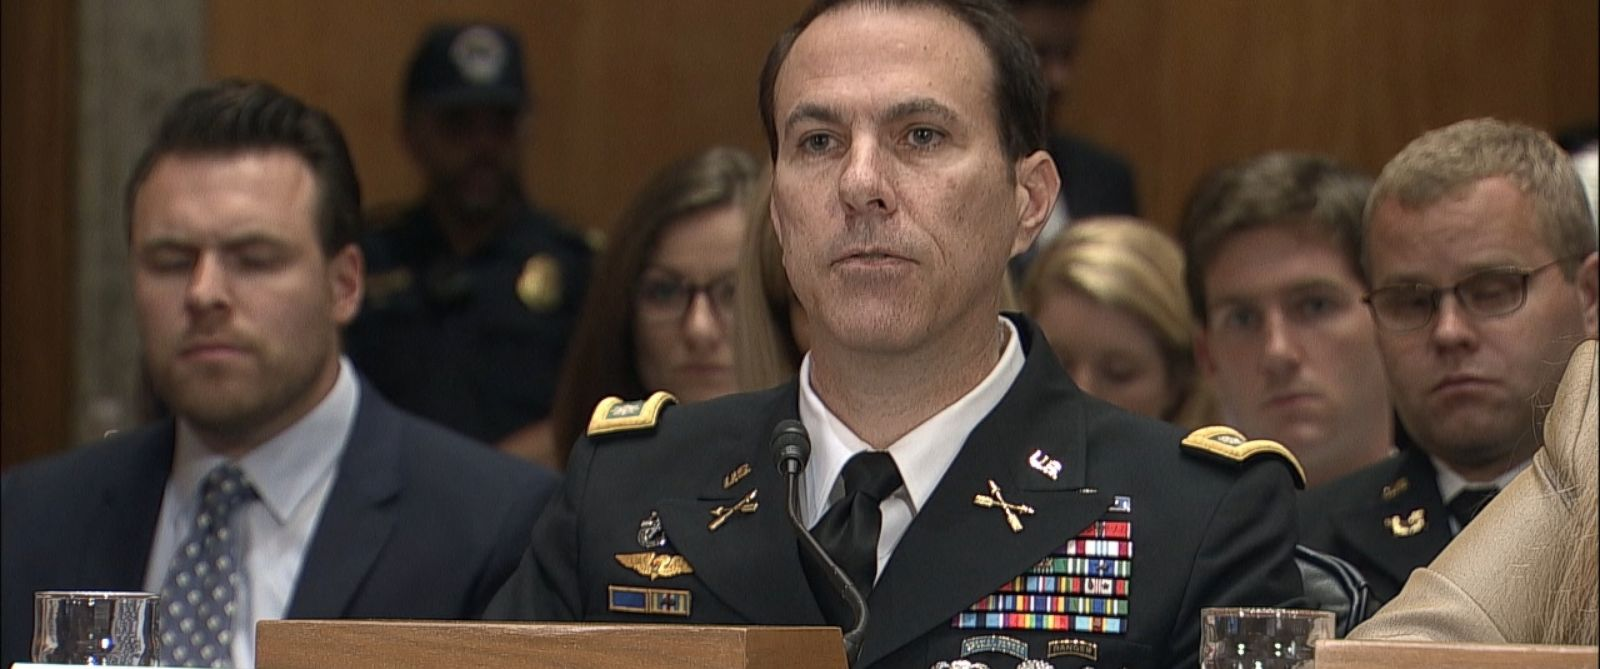 PHOTO: Lt. Col. Jason Amerine testifies before the Senate Homeland Security and Governmental Affairs Committee, June 11, 2015.